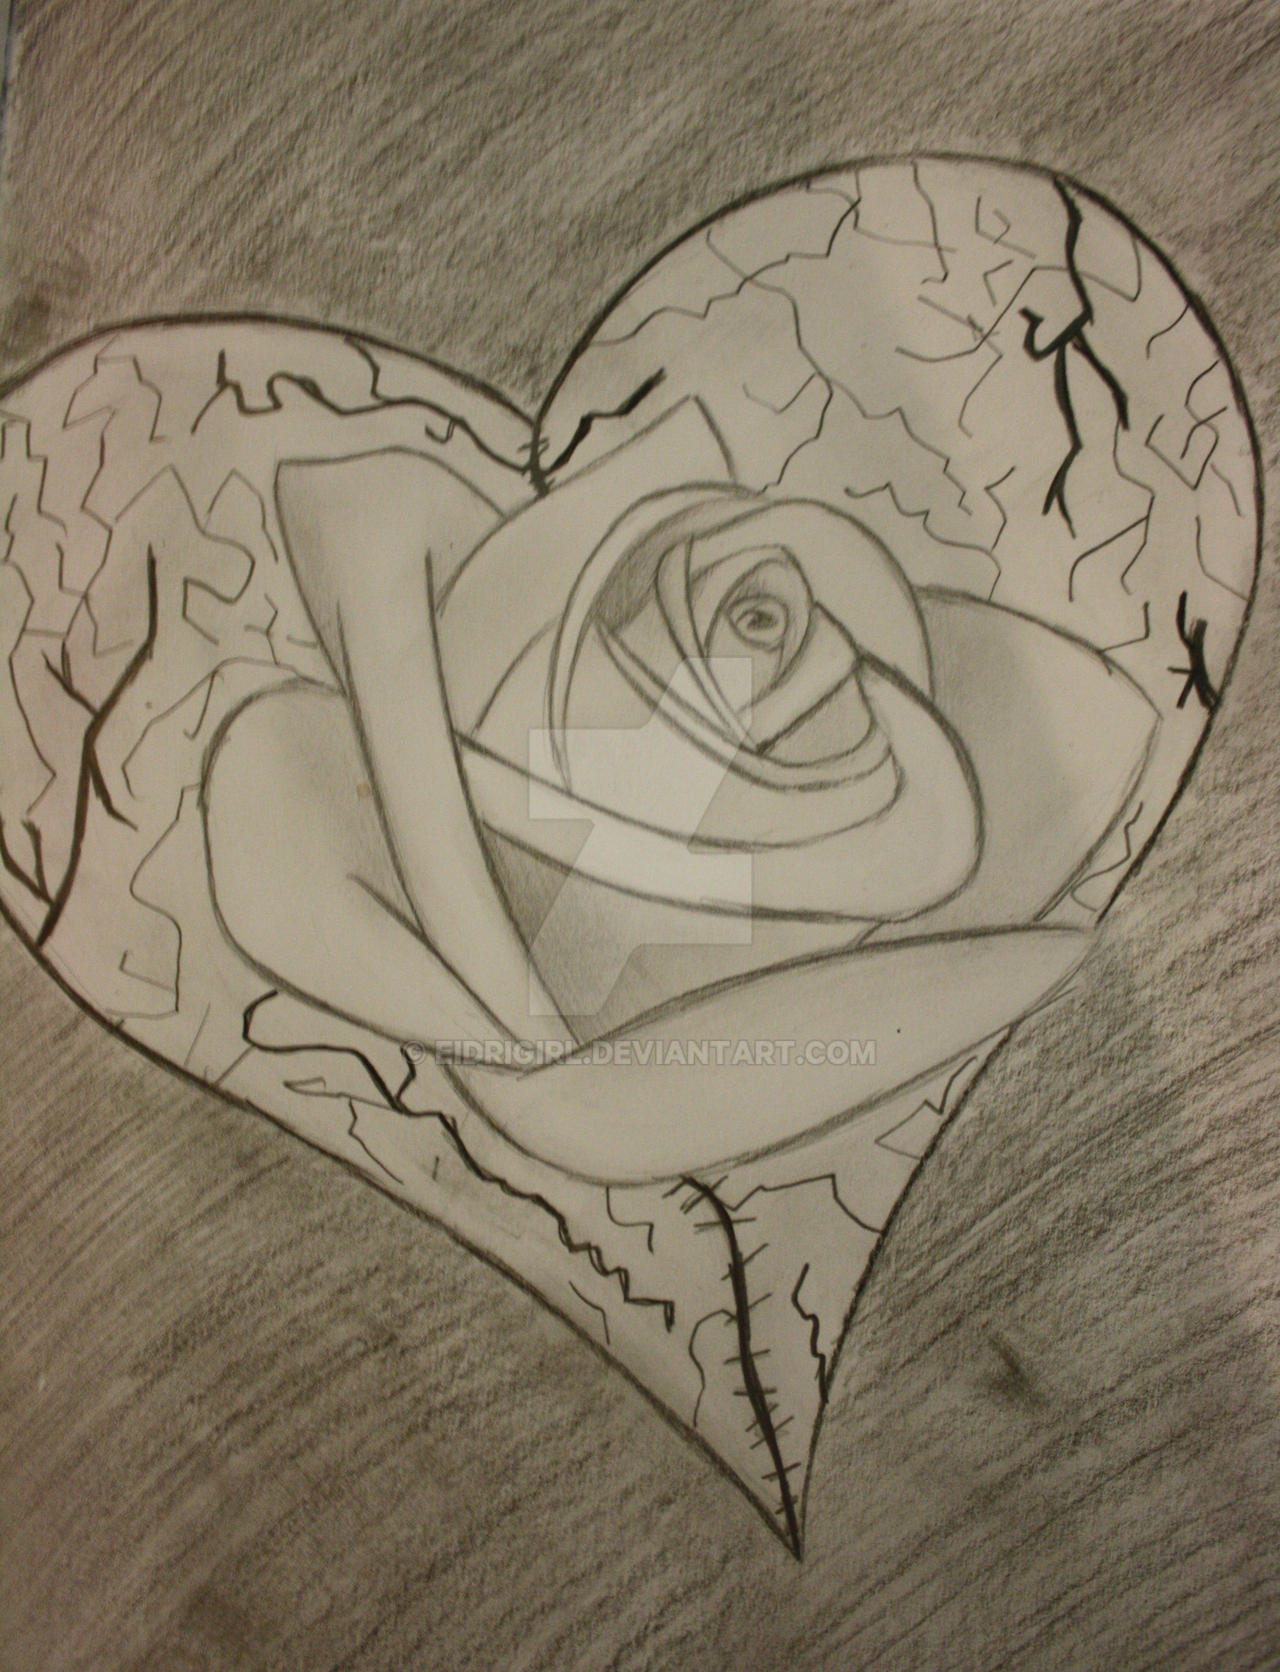 Rose and Broken Heart by eidrigirl on DeviantArt